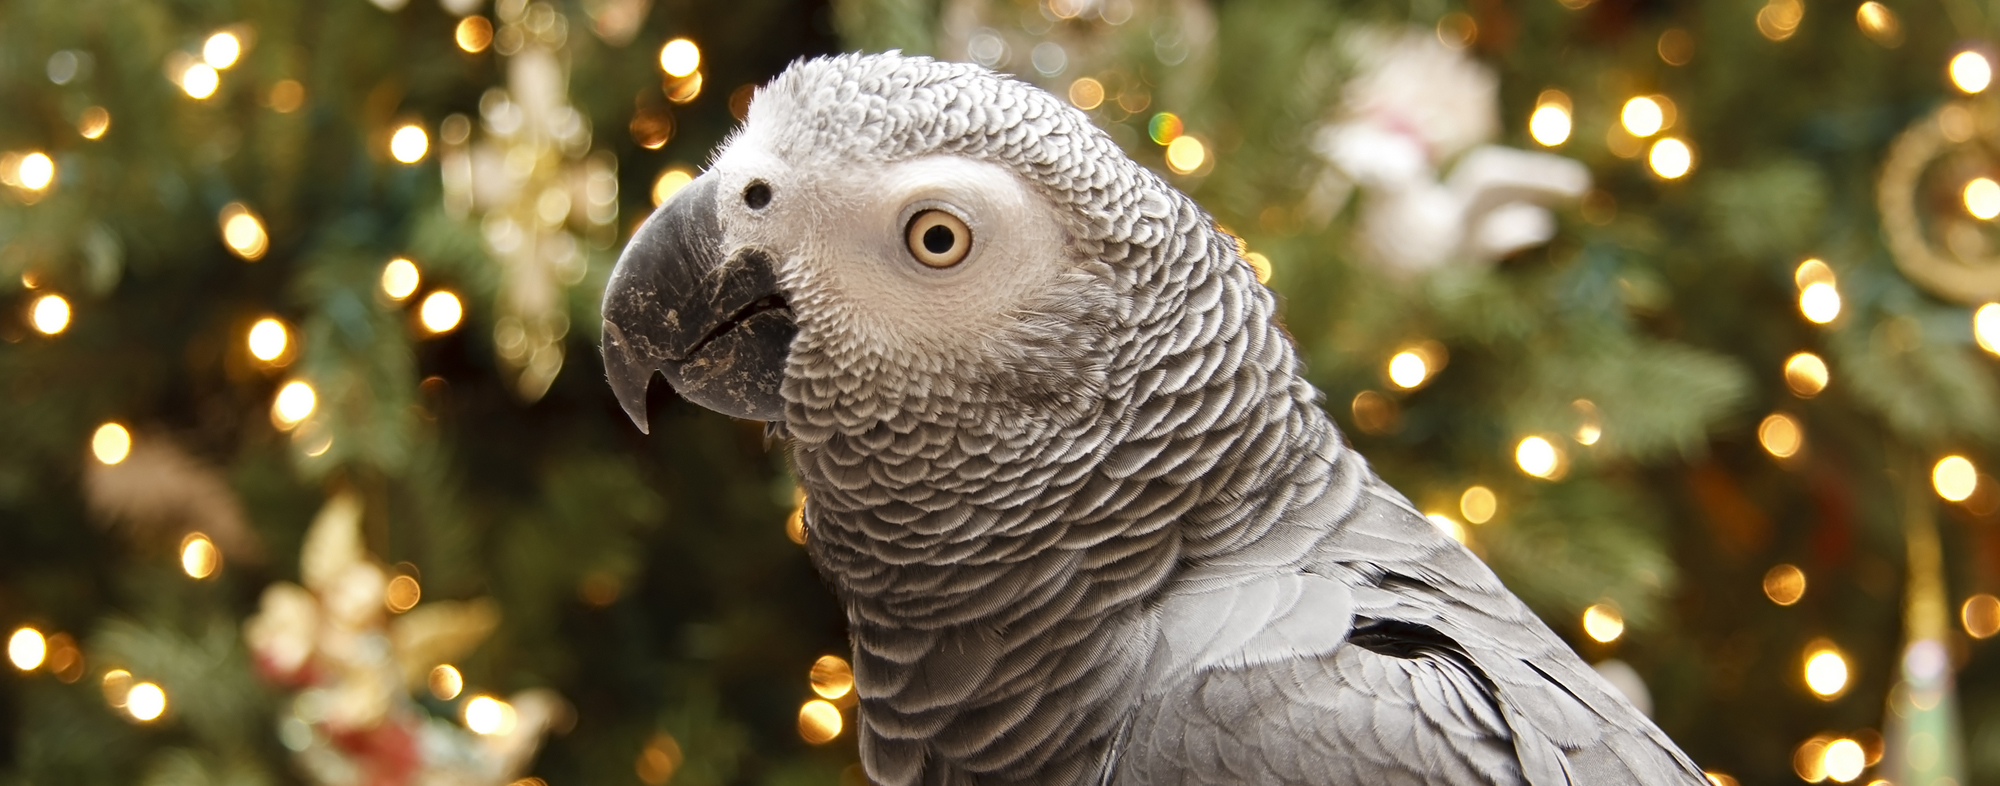 A grey winged parrot receiving extra care during the holidays